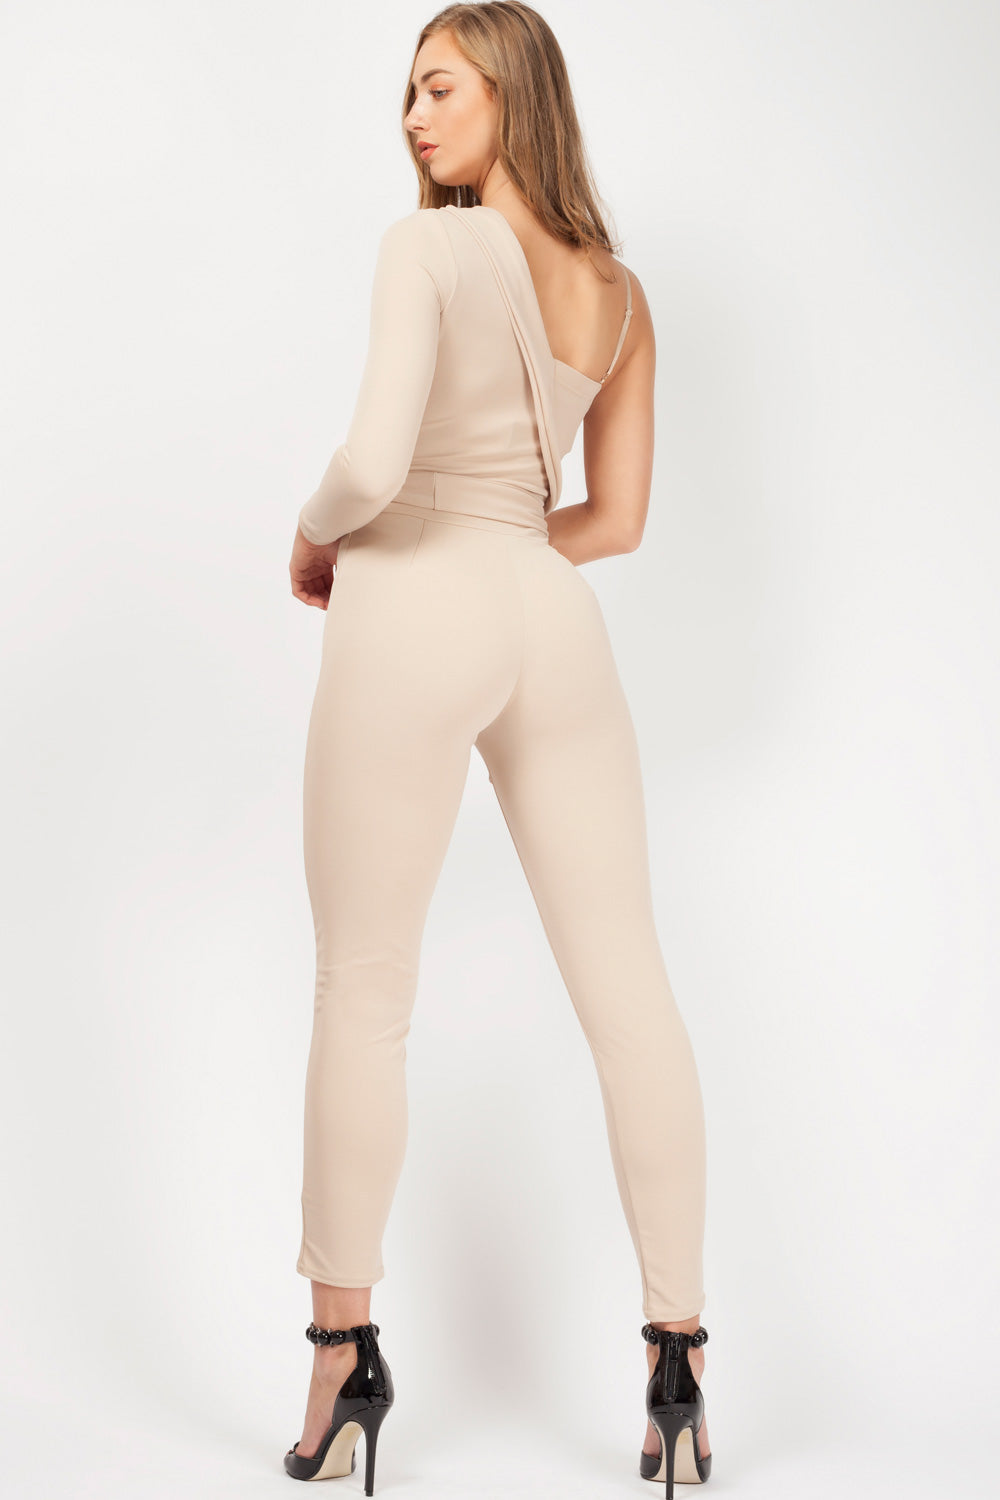 nude one shoulder jumpsuit